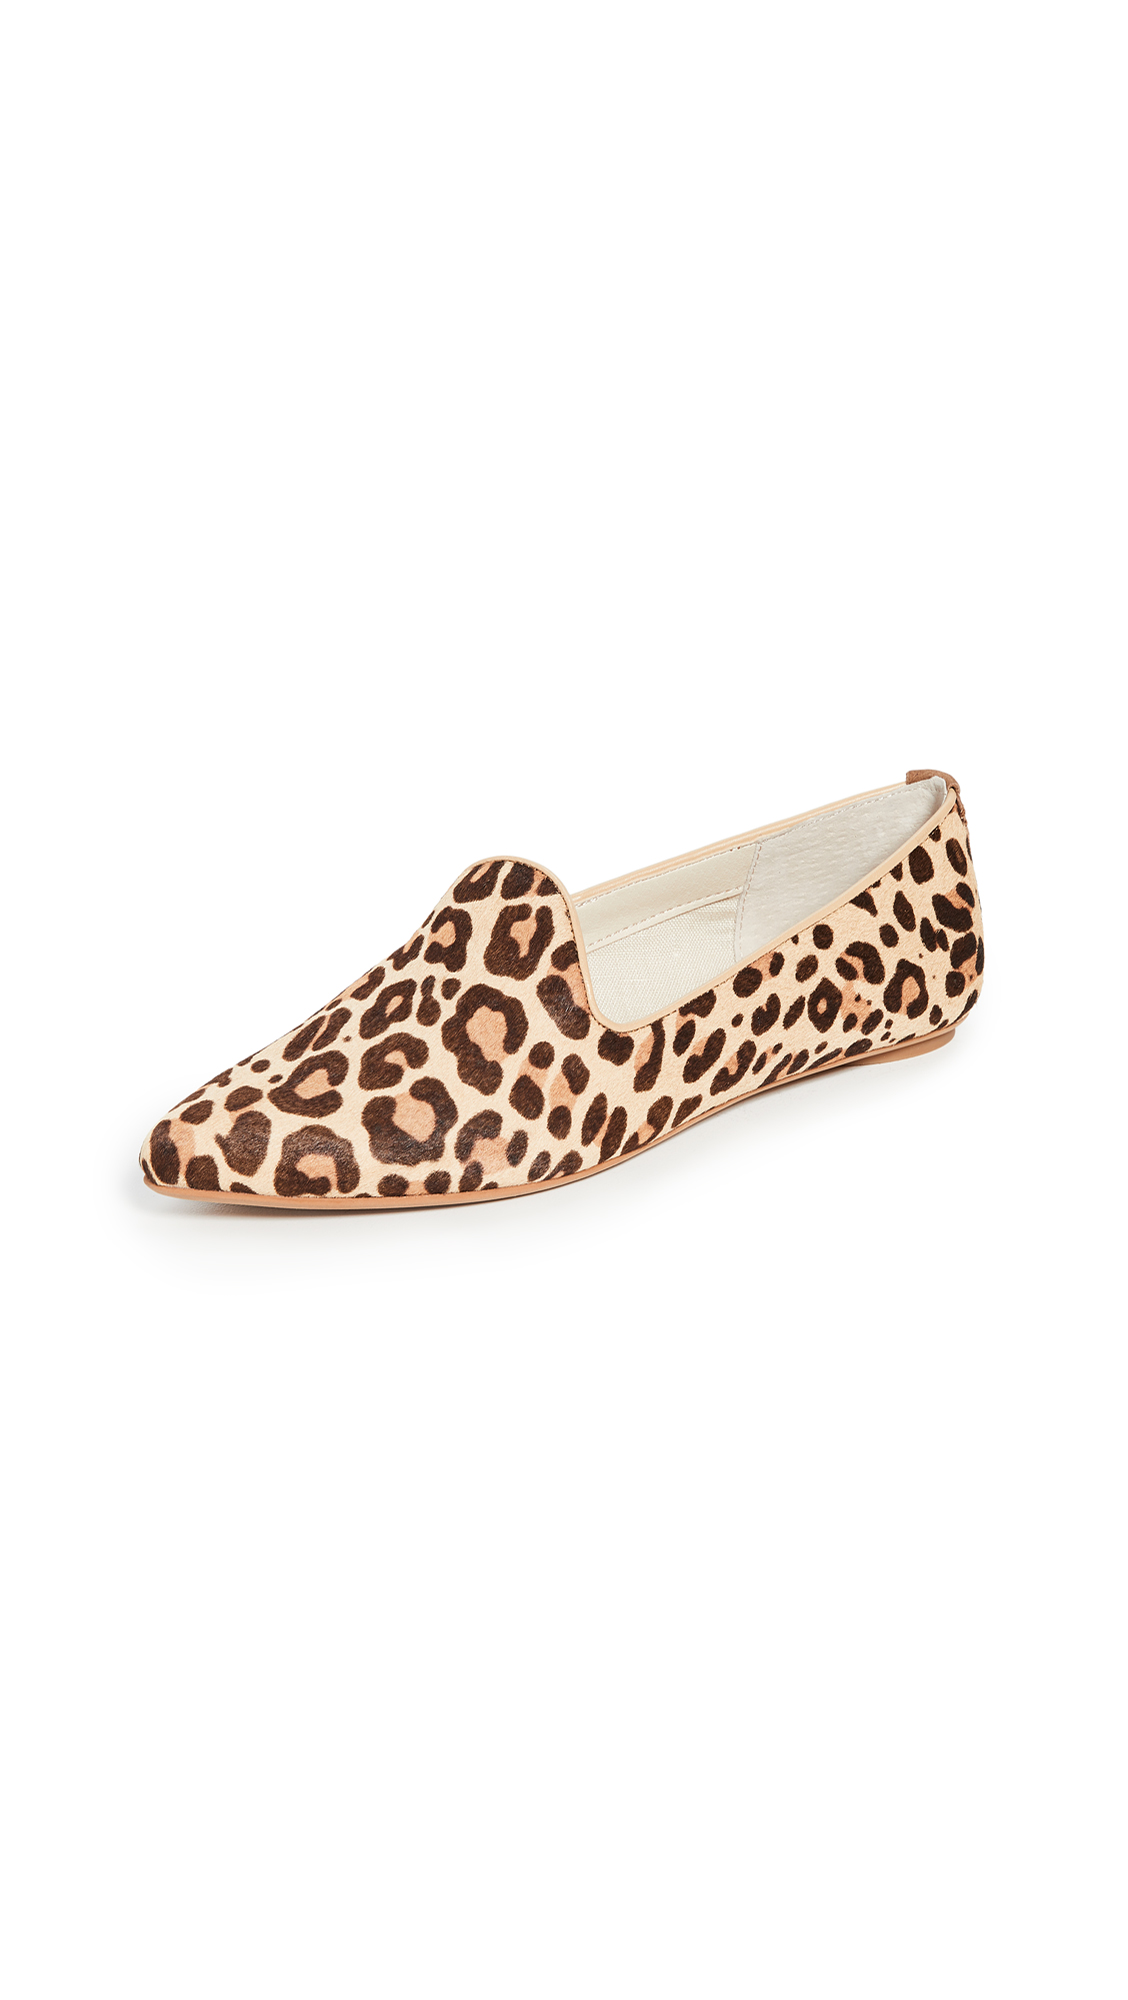 Buy Dolce Vita Gail Loafers online, shop Dolce Vita